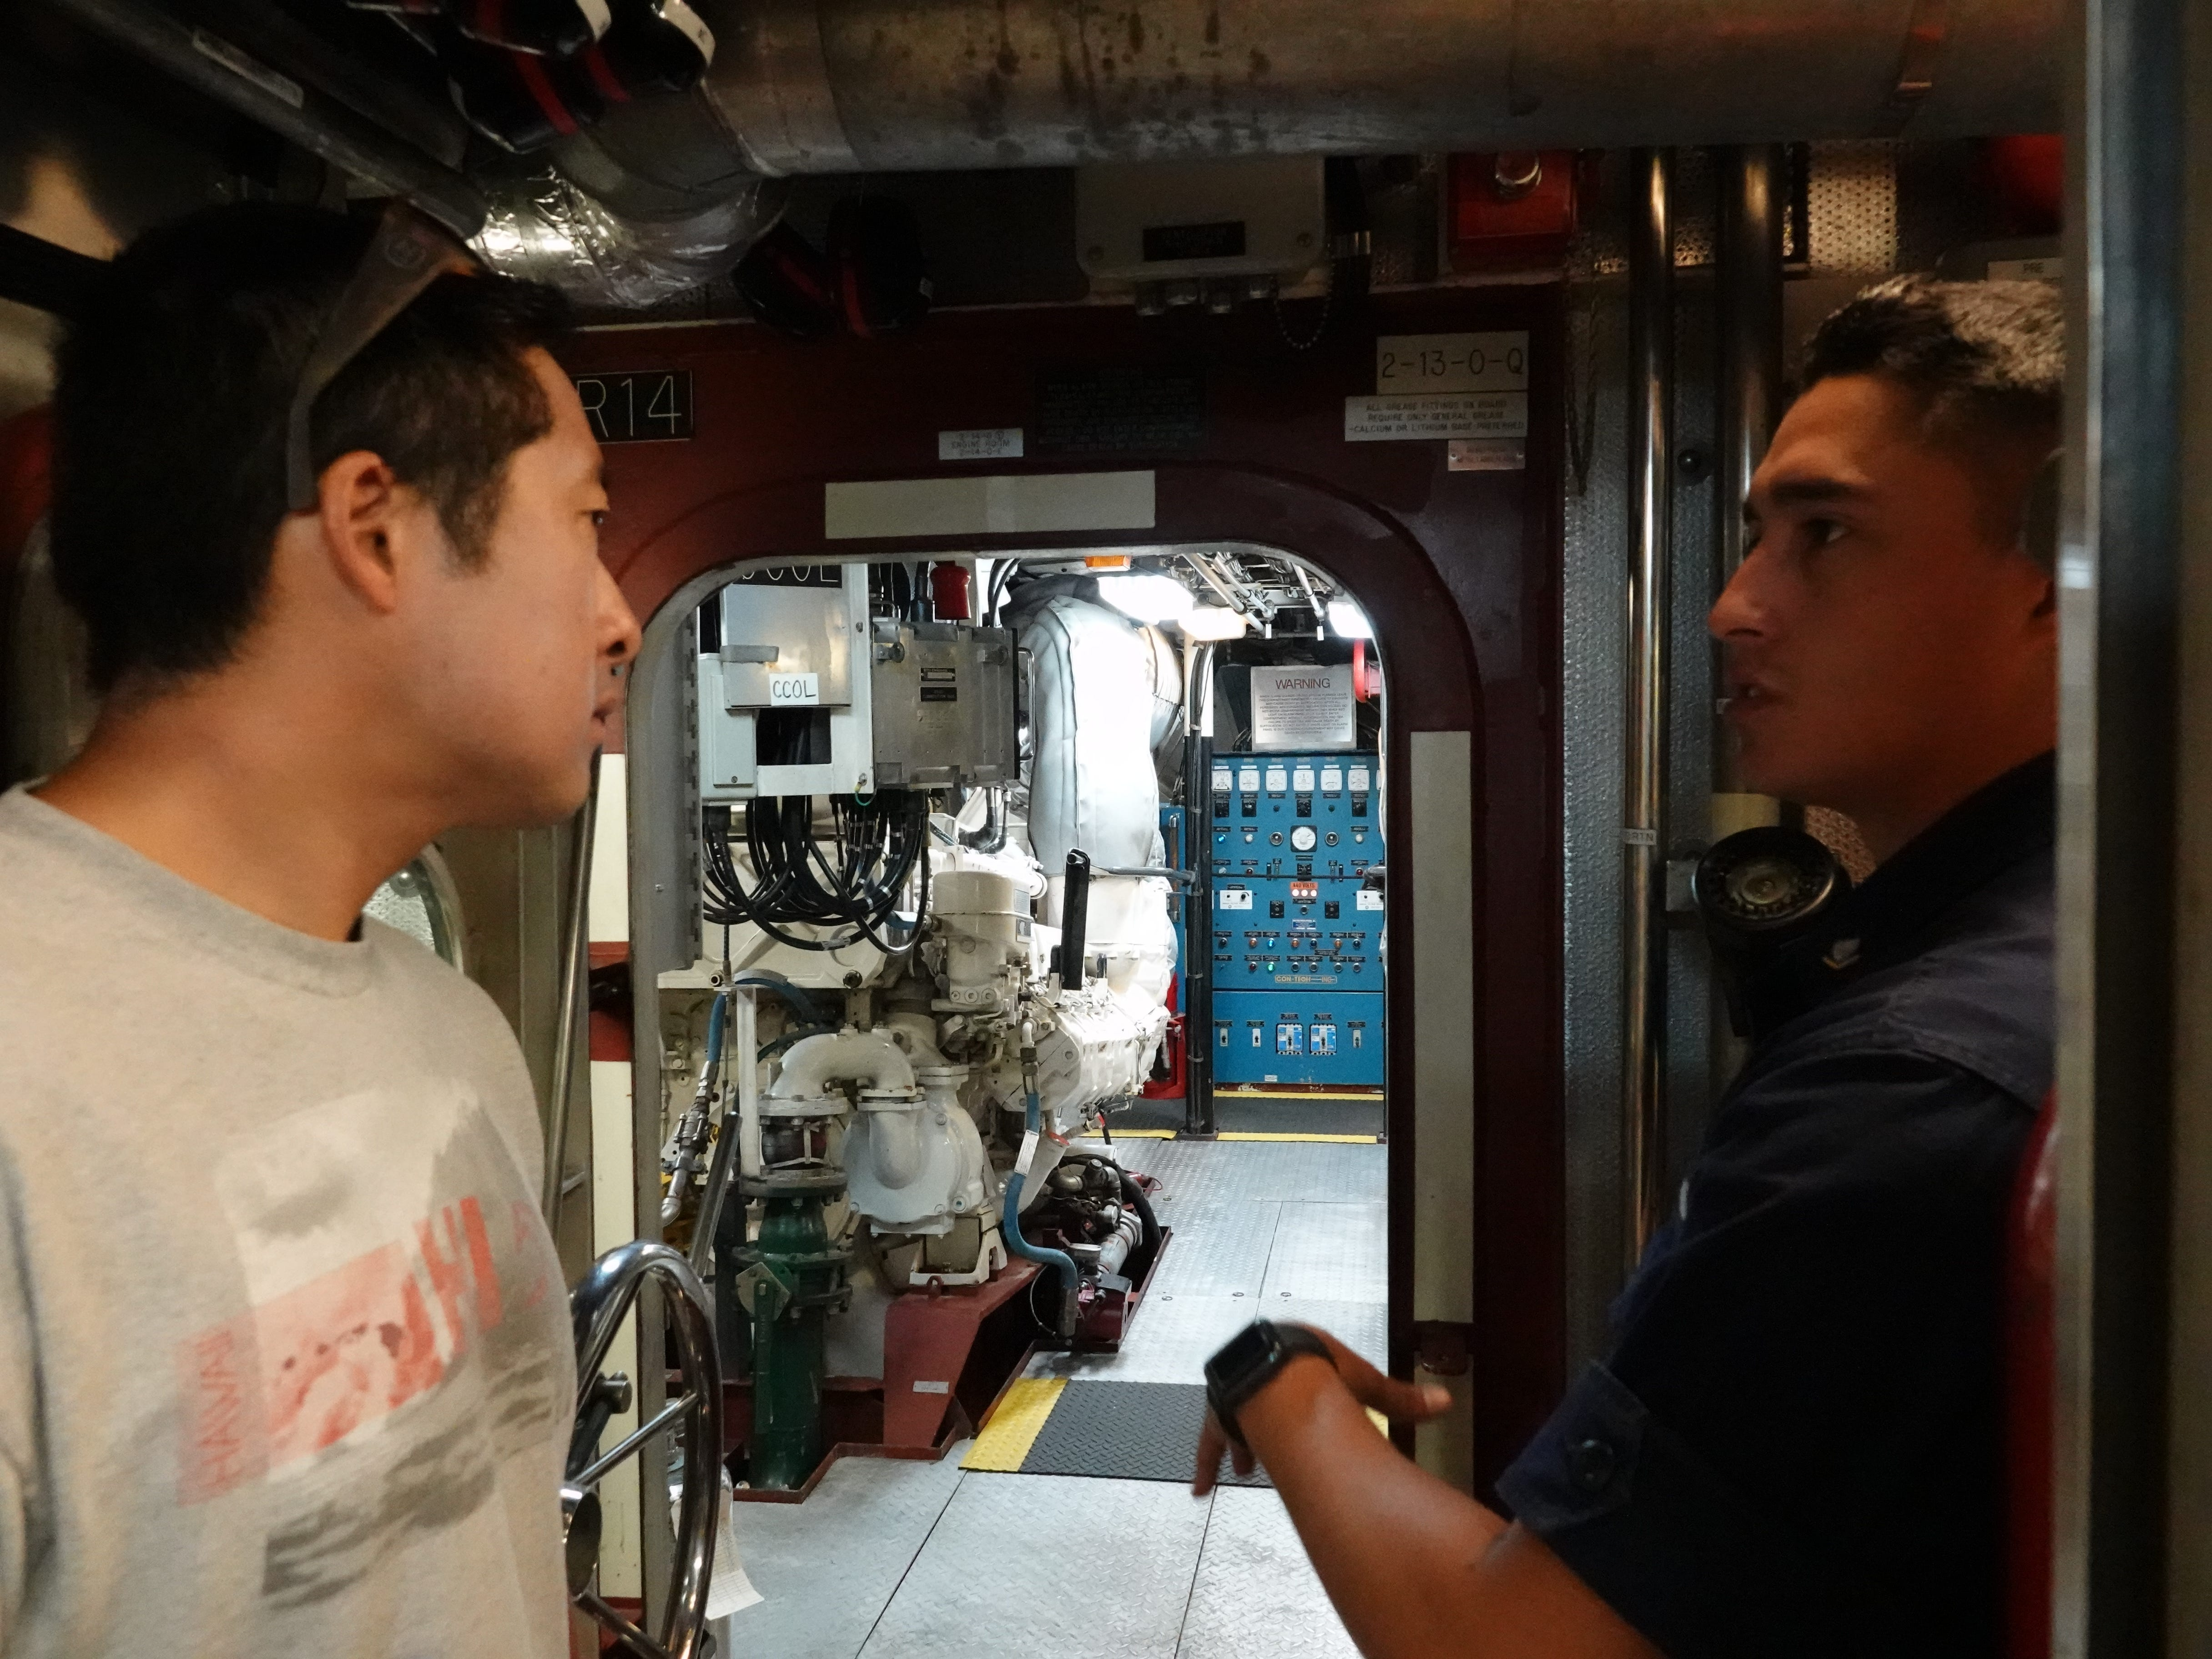 Charles Lee, left, listens as Coast Guard Machinery Technician Anthony Guerrero describes the engine room aboard the cutter Blacktip during Saturday's Safe Boating Expo at Channel Islands Harbor.